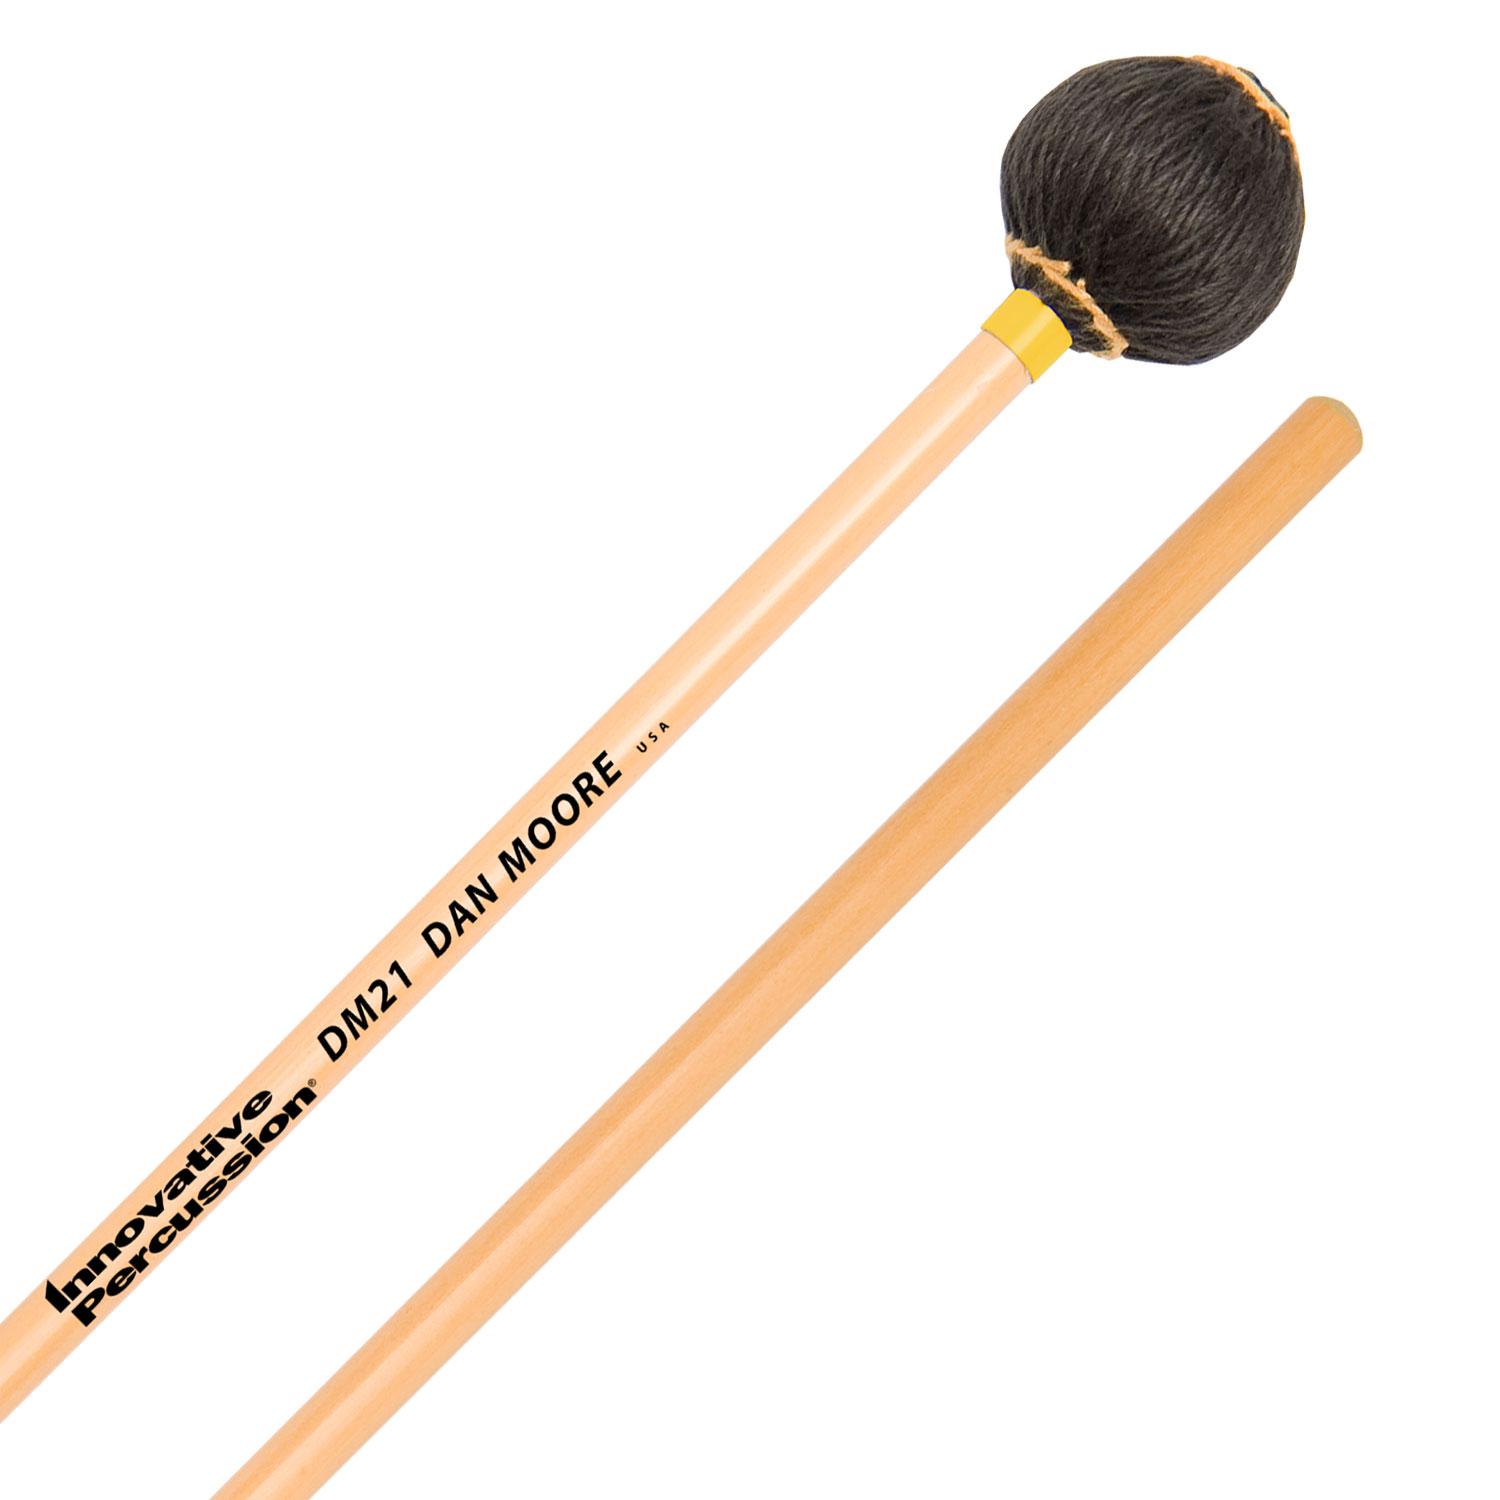 Innovative Percussion Dan Moore Signature Deep Marimba Mallets